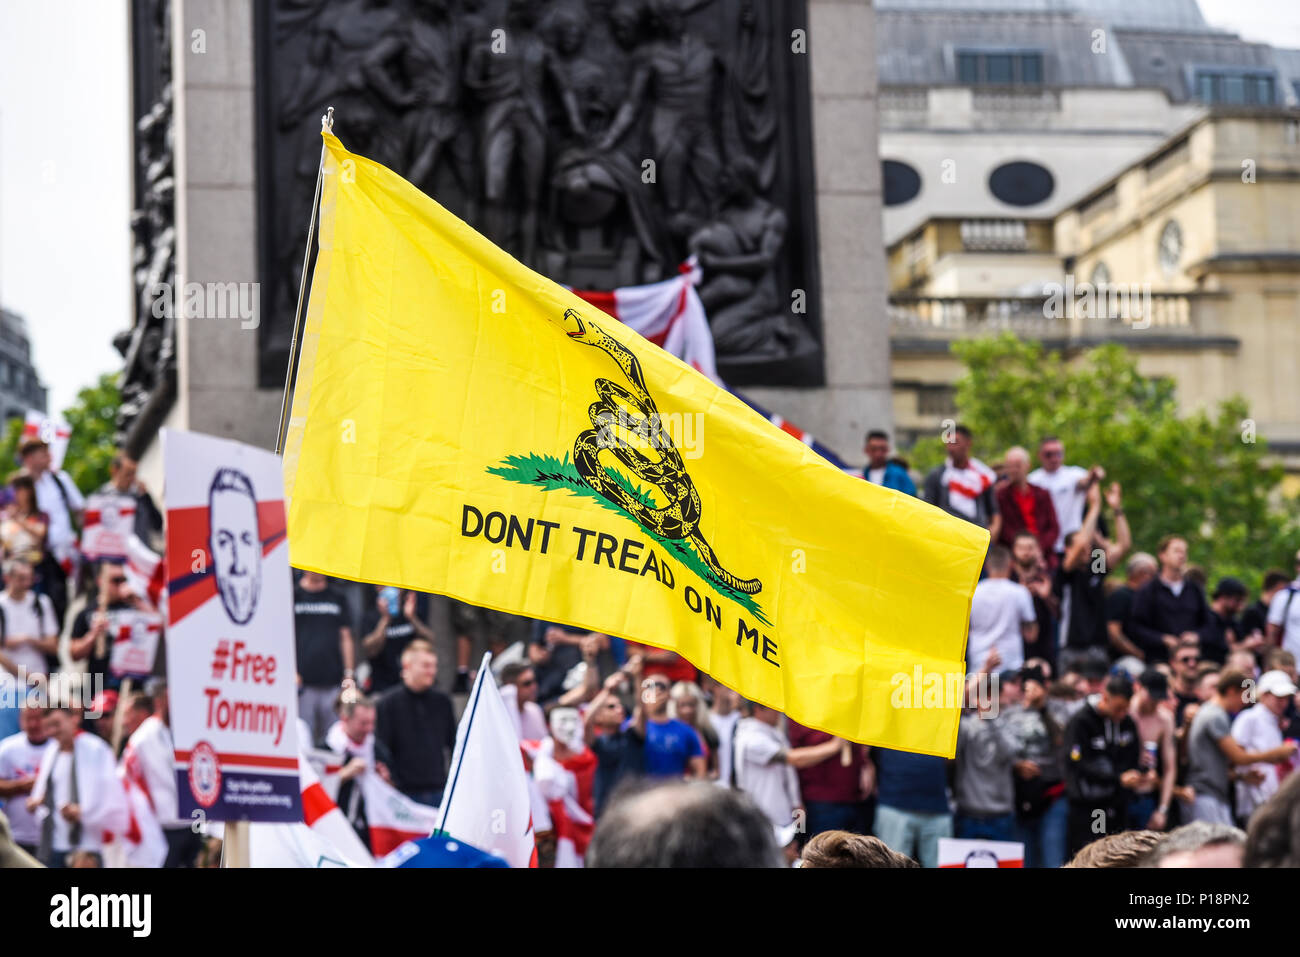 English Defence League and supporters gathered in Trafalgar Square to protest against the arrest of Tommy Robinson. Metallica Don't Tread on Me flag - Stock Image